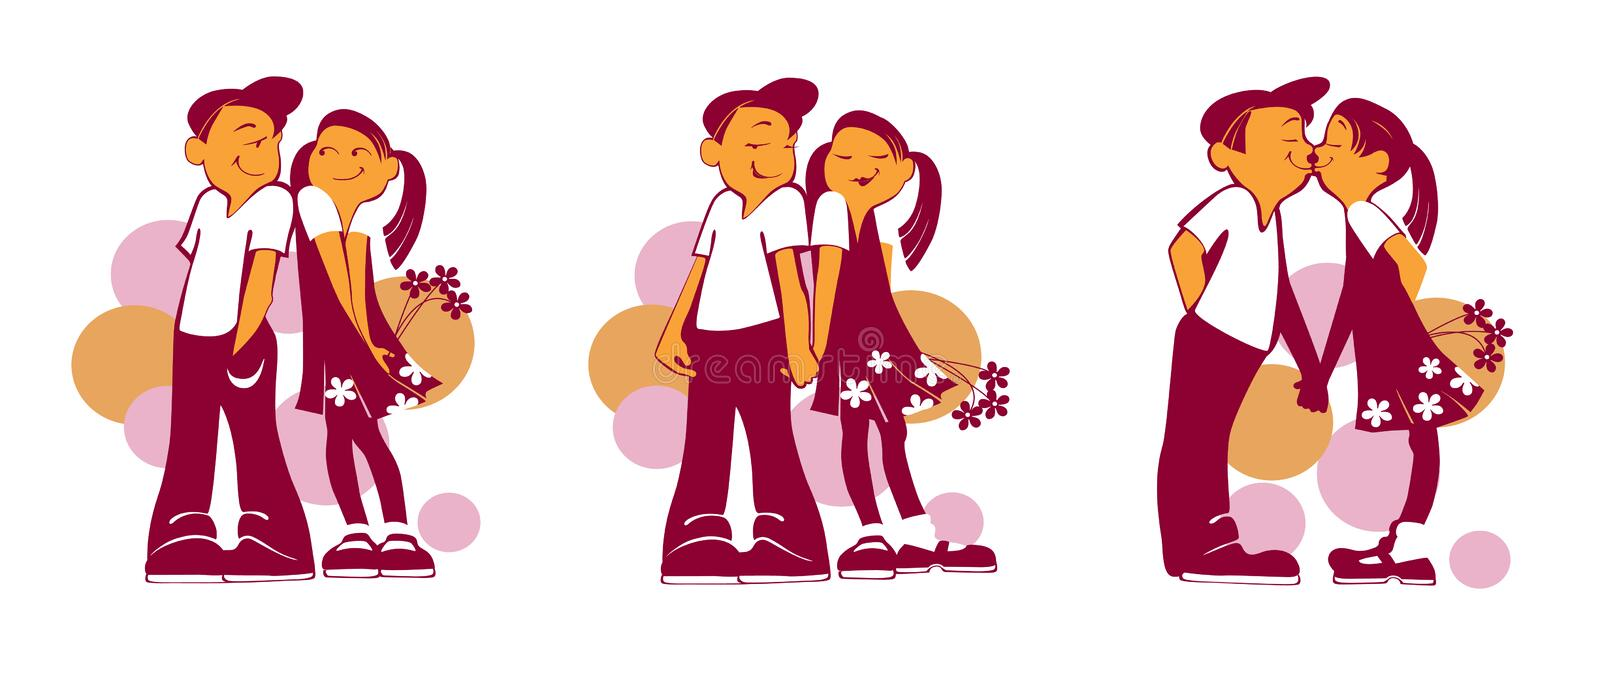 Boy and girl with flowers stock illustration